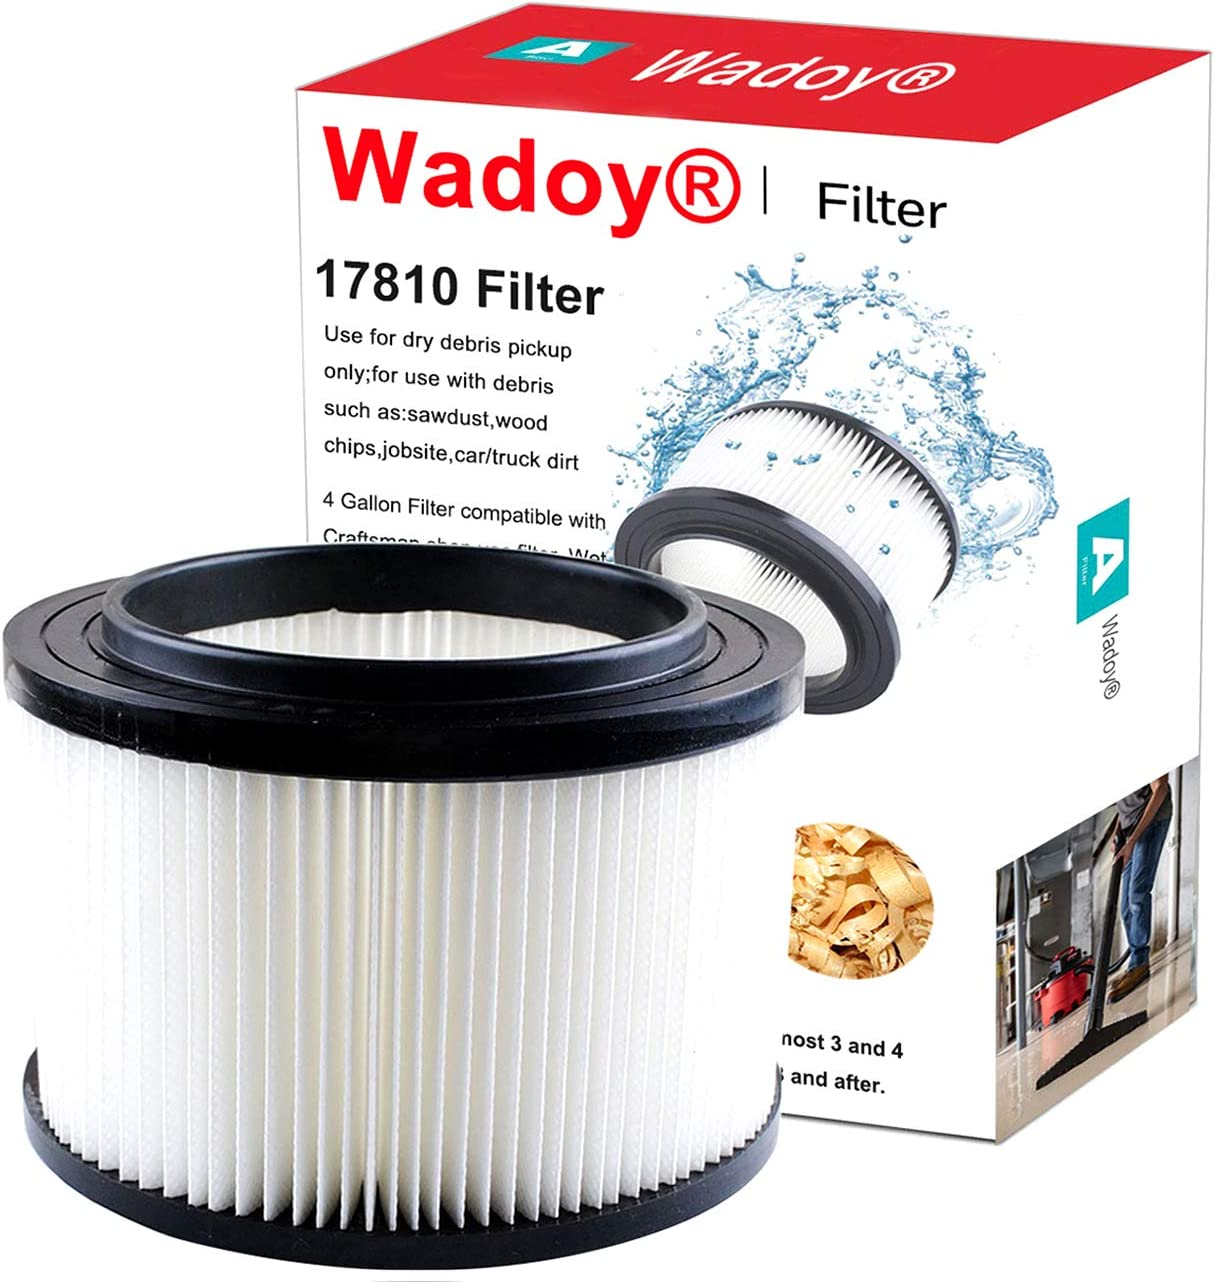 Wadoy 17810 Filter Compatible with Craftsman Shop Vac 9-17810 Wet Dry Vacuum Filter Compatible with Craftsman 4 GallonReplacement Filter